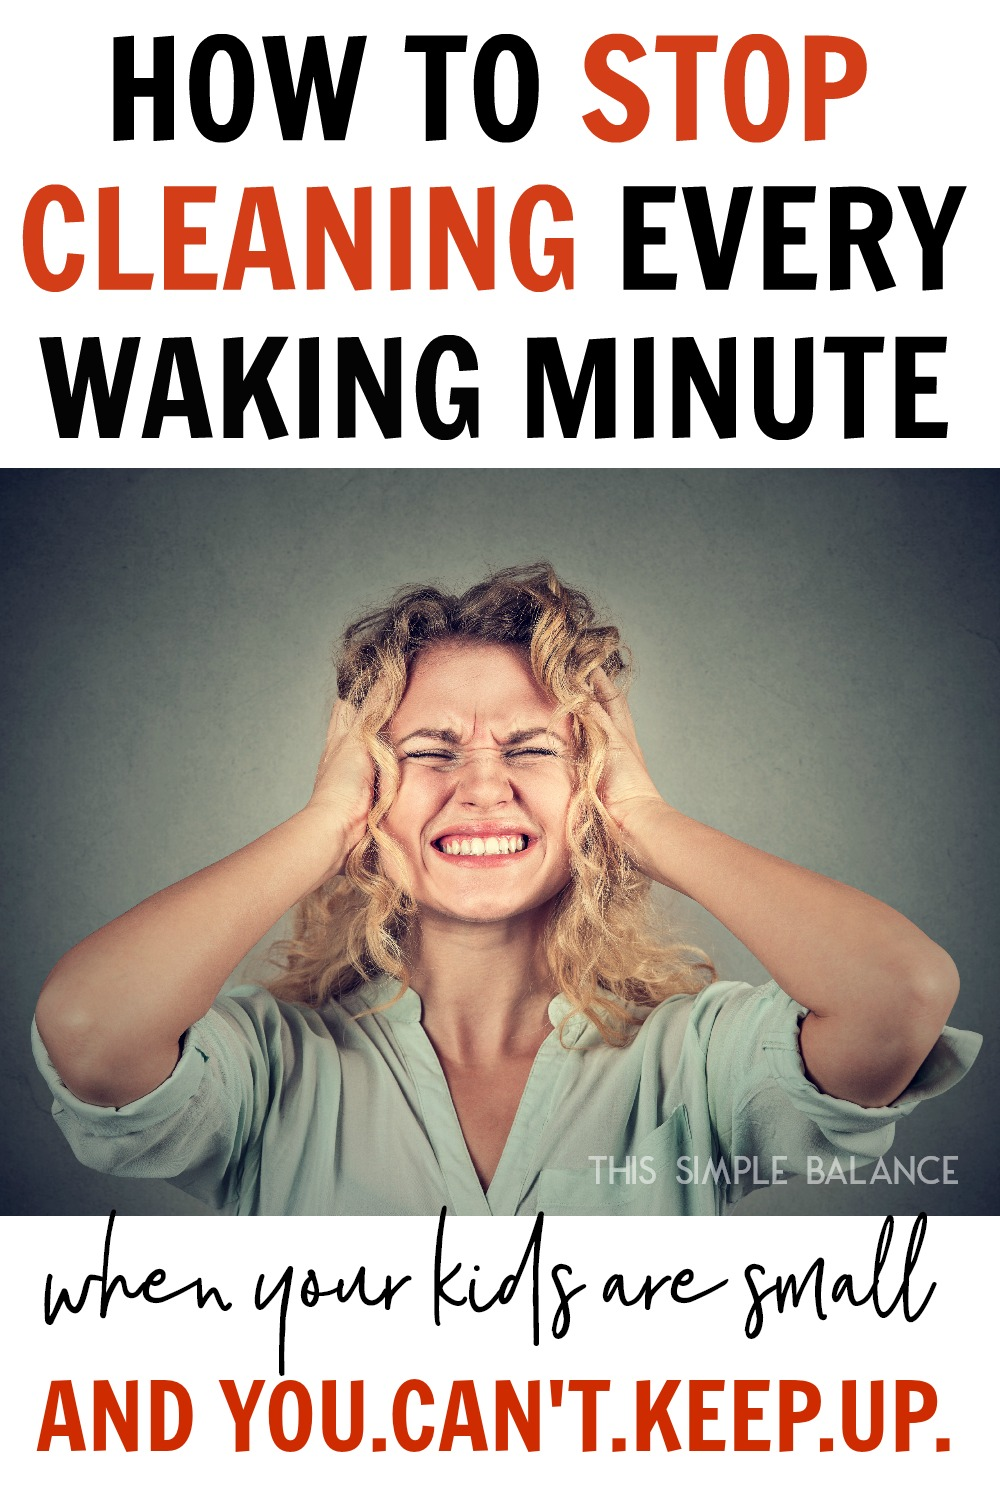 Tired of obsessing over a clean house and spending all your time and energy cleaning? When you have little ones, something it's time to stop obsessing over a clean house - here's what I did to stop cleaning every.waking.minute. and enjoy my little ones instead!